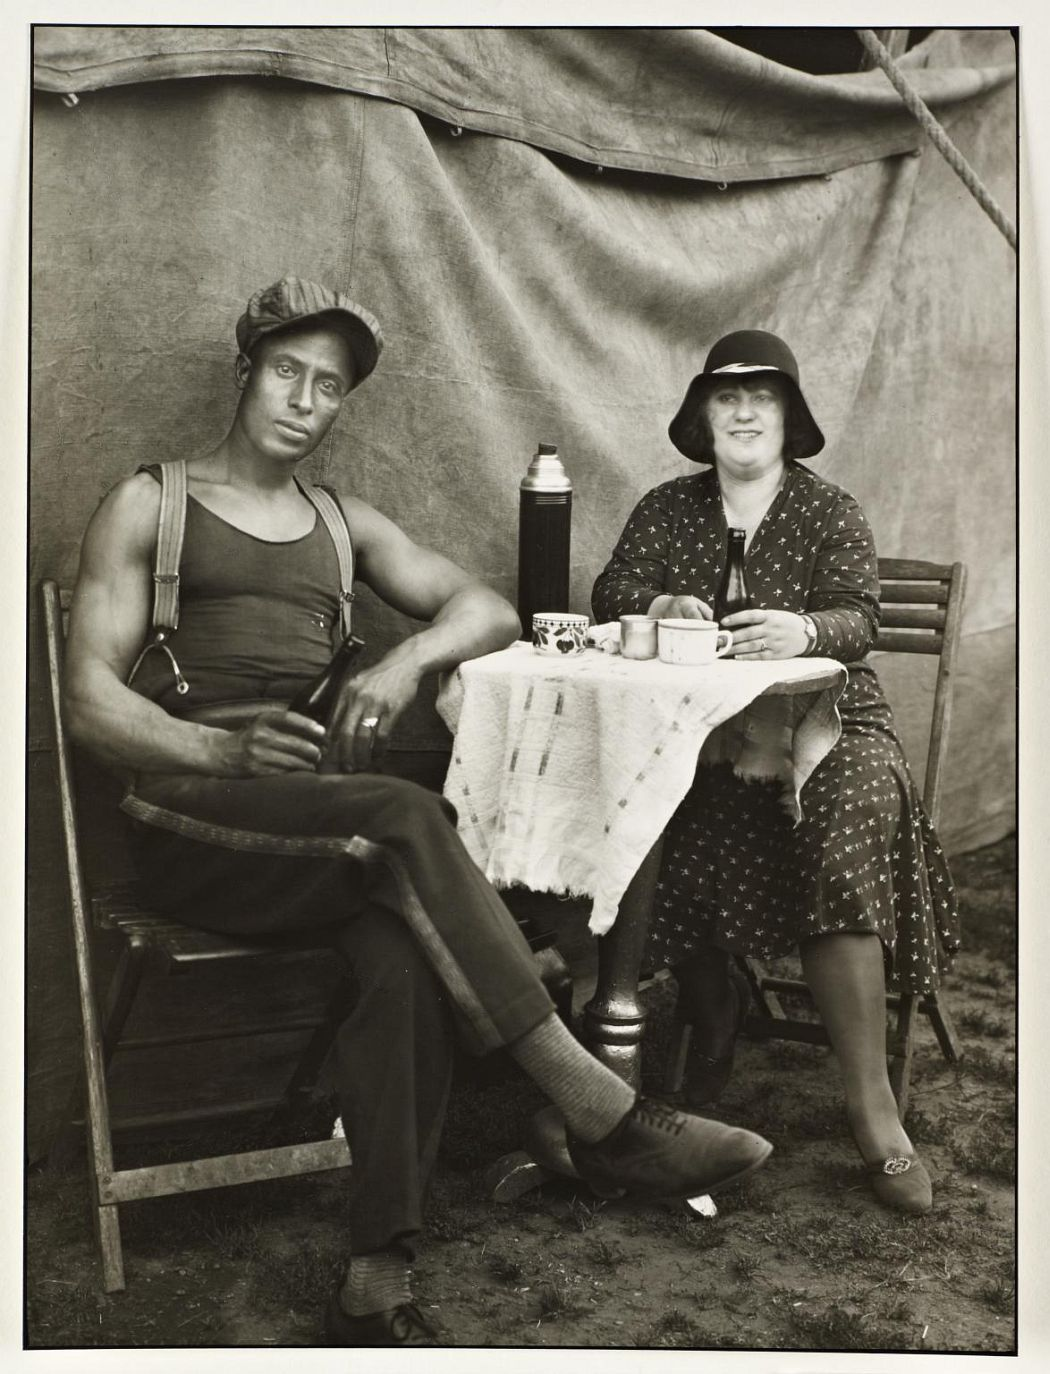 Circus Workers 1926-32, printed 1990 August Sander 1876-1964 ARTIST ROOMS Tate and National Galleries of Scotland. Lent by Anthony d'Offay 2010